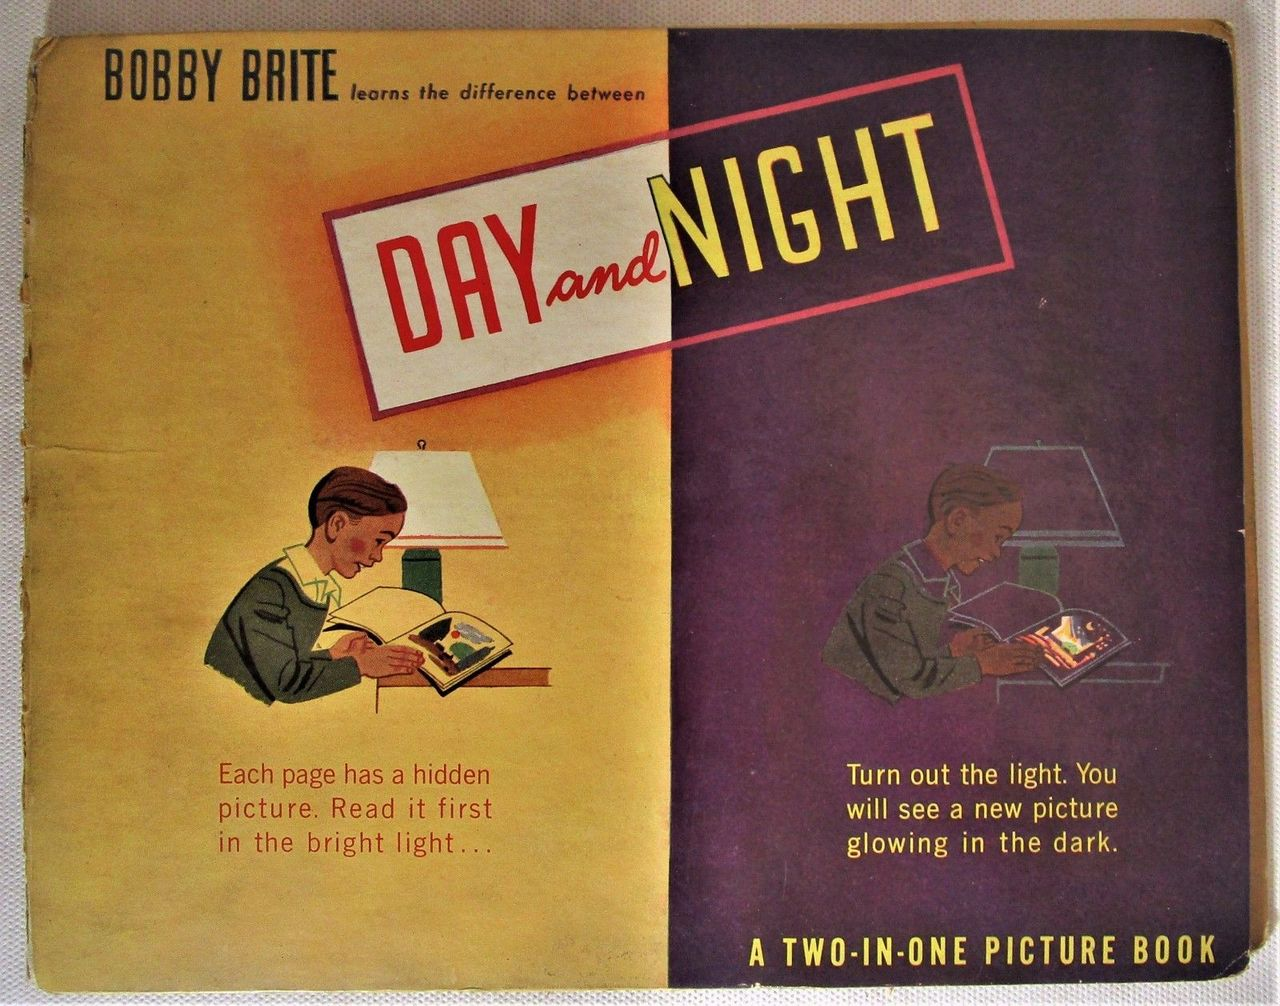 BOBBY BRITE LEARNS THE DIFFERENCE BETWEEN DAY AND NIGHT, by R. Fechheimer; D.L. Gillen (illus) - 1946